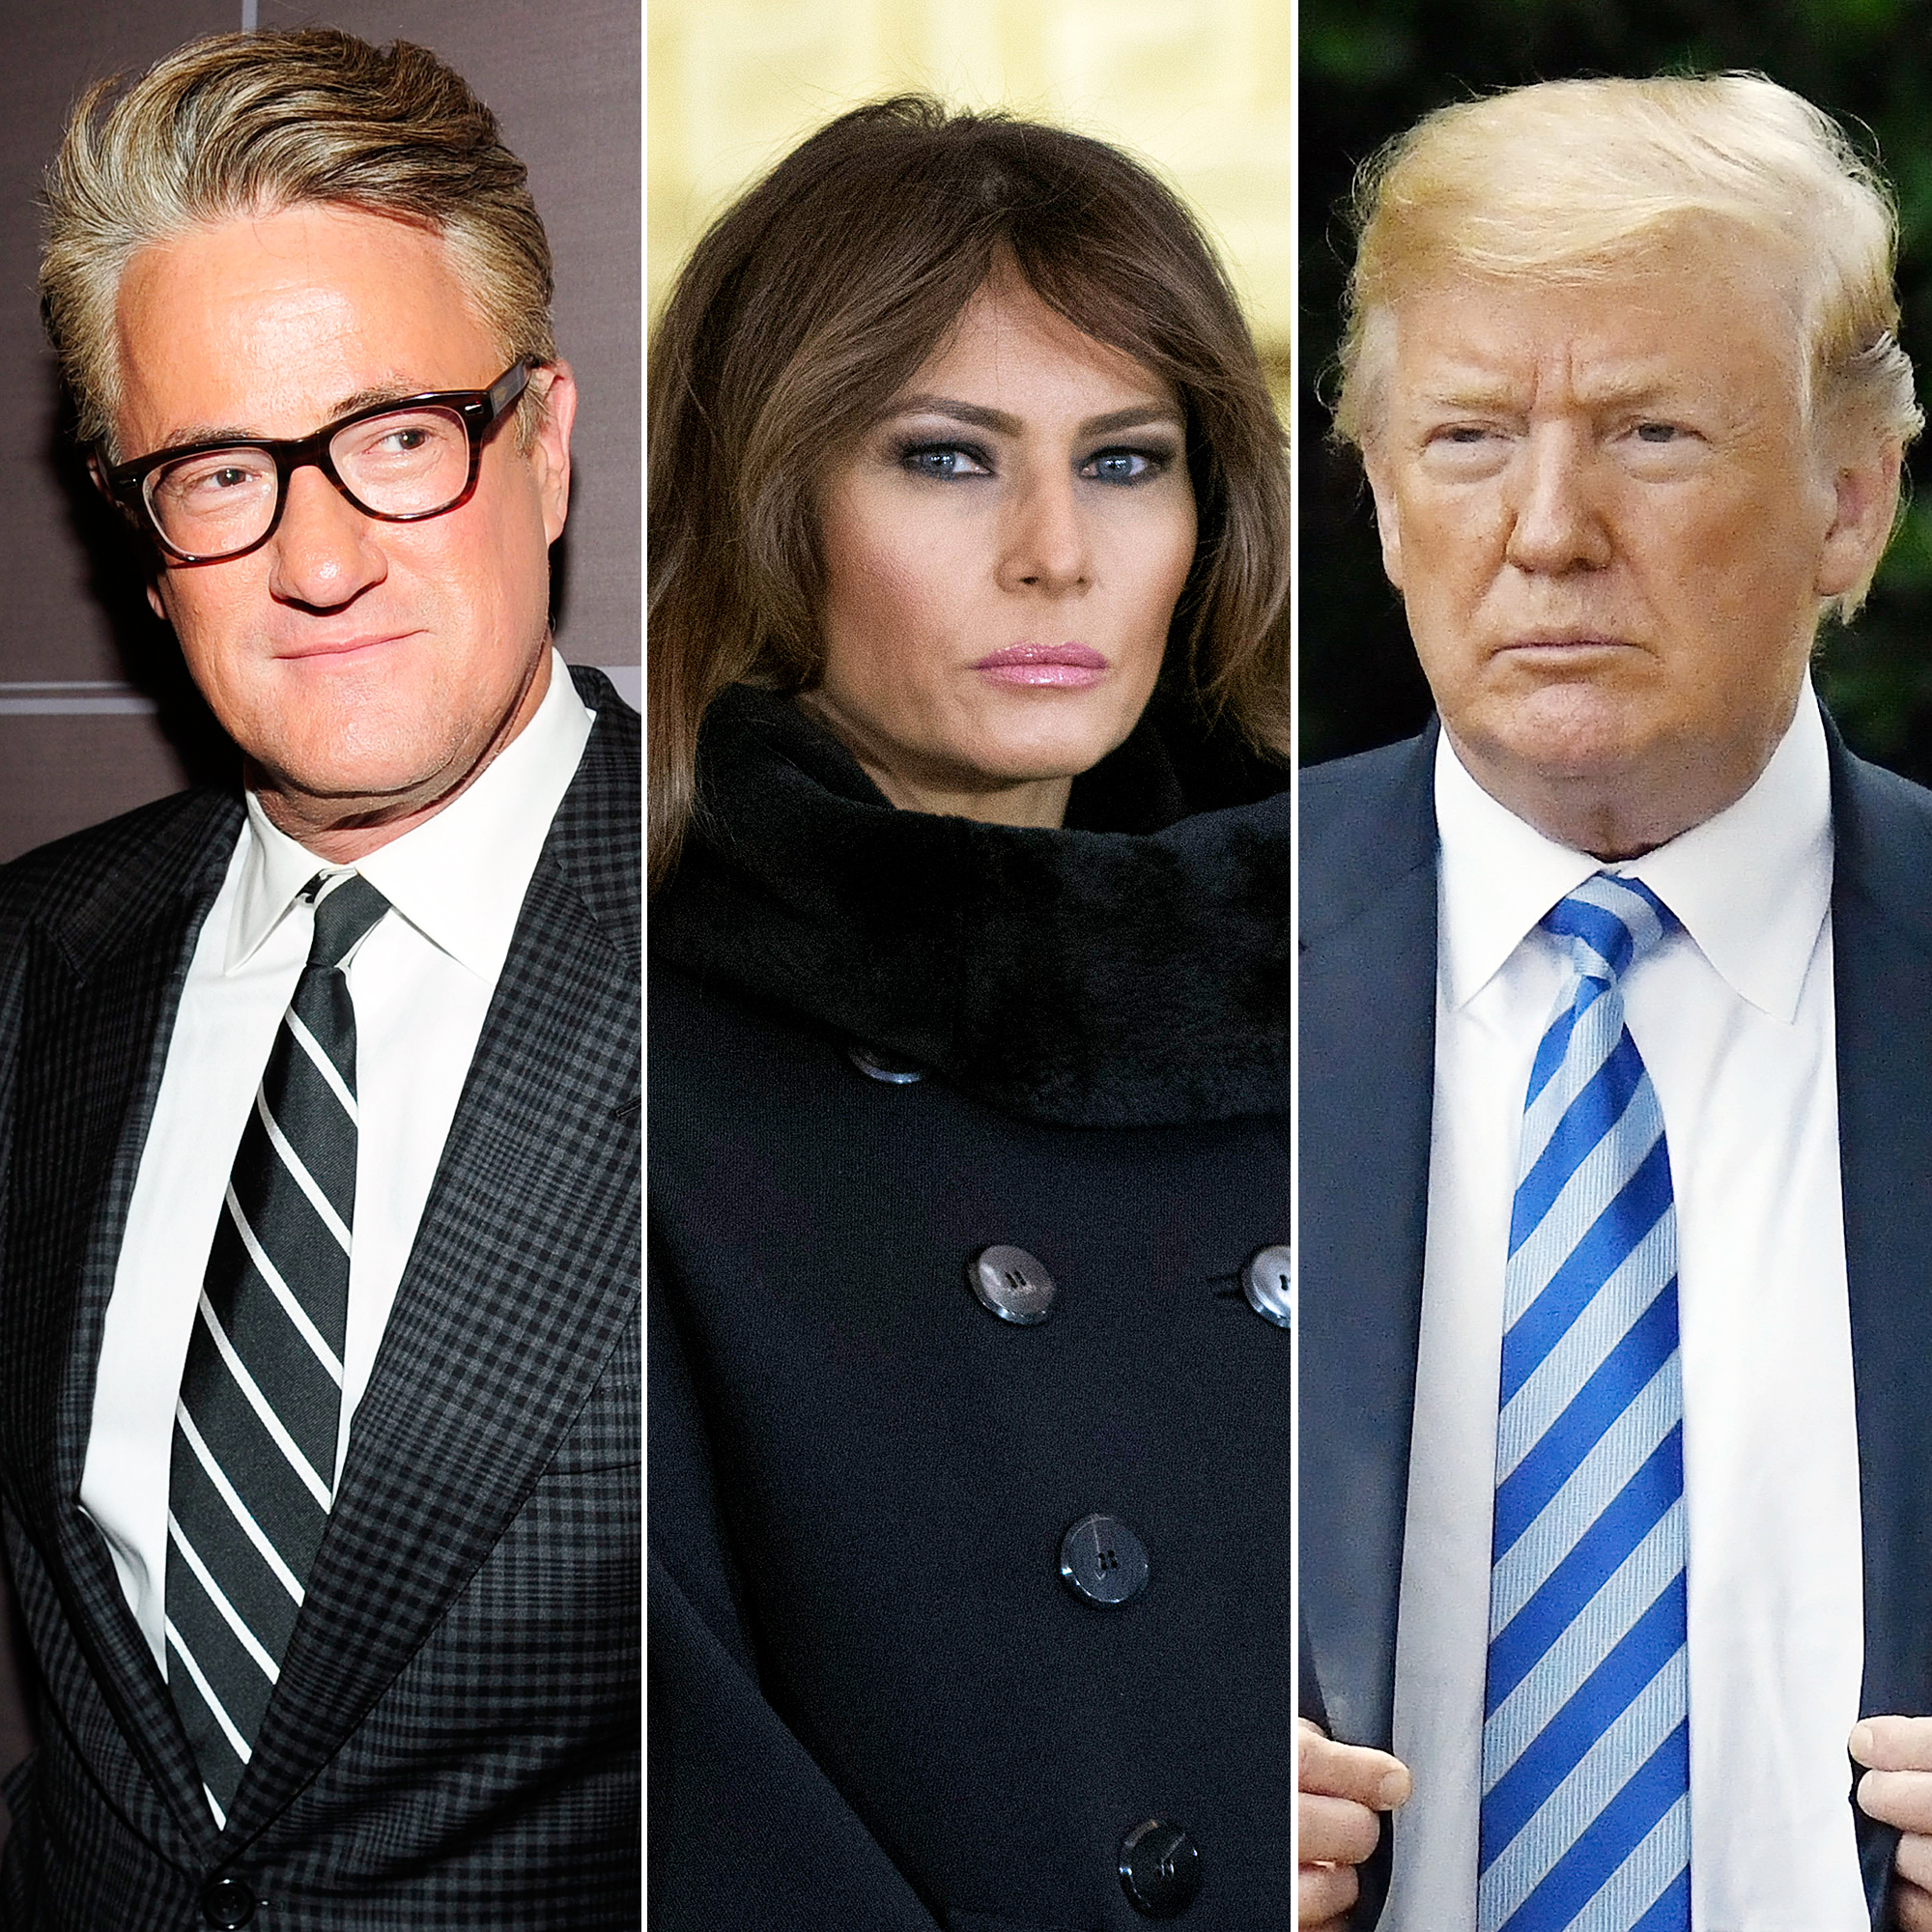 Joe Scarborough Donald Trump Melania Trump Facelift Rumors